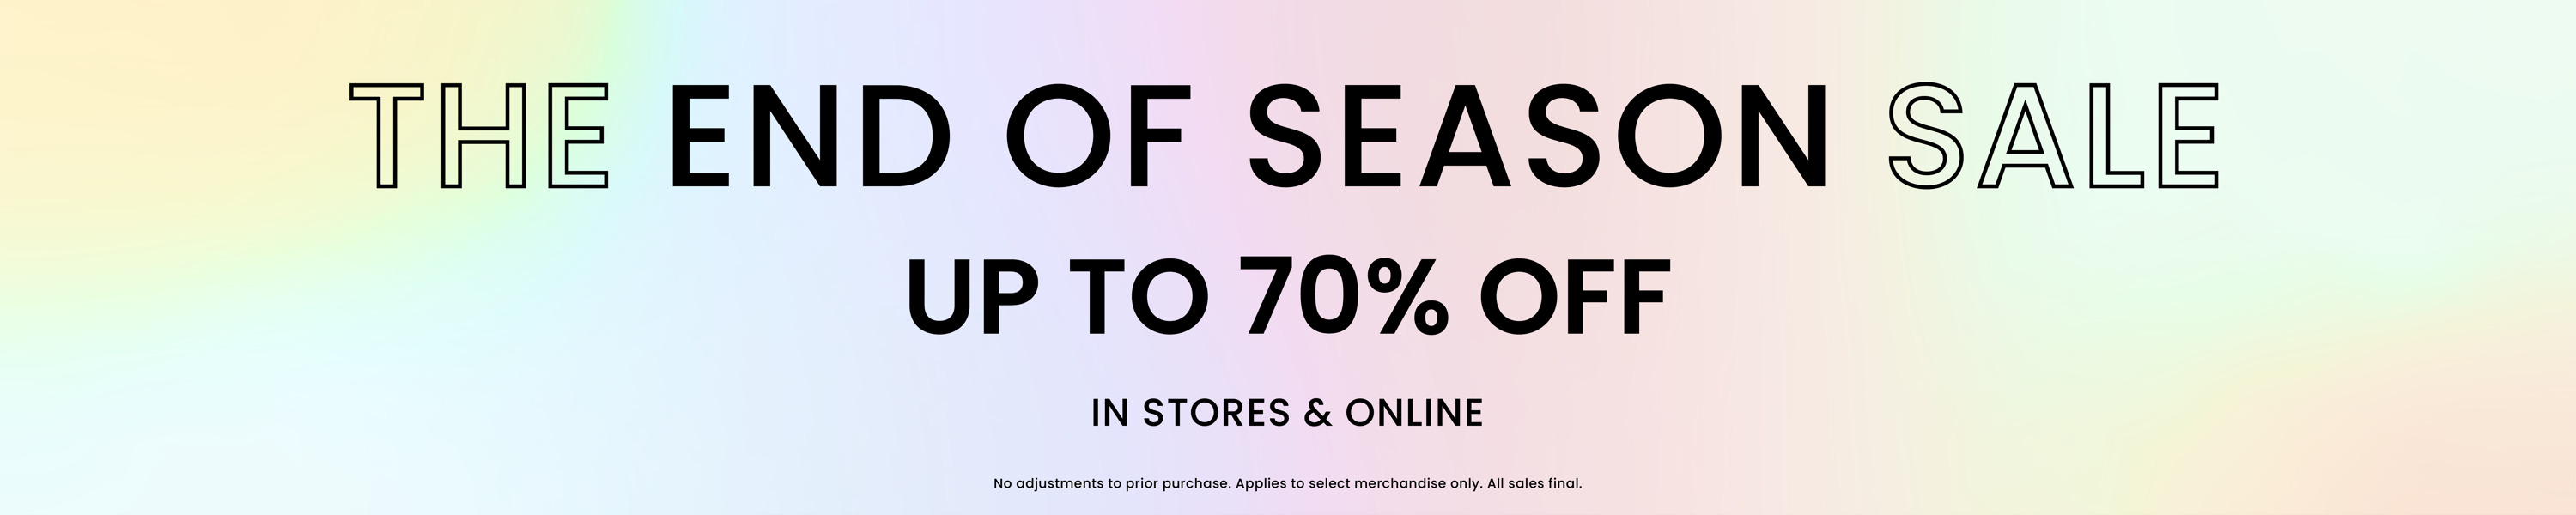 The end of season sale